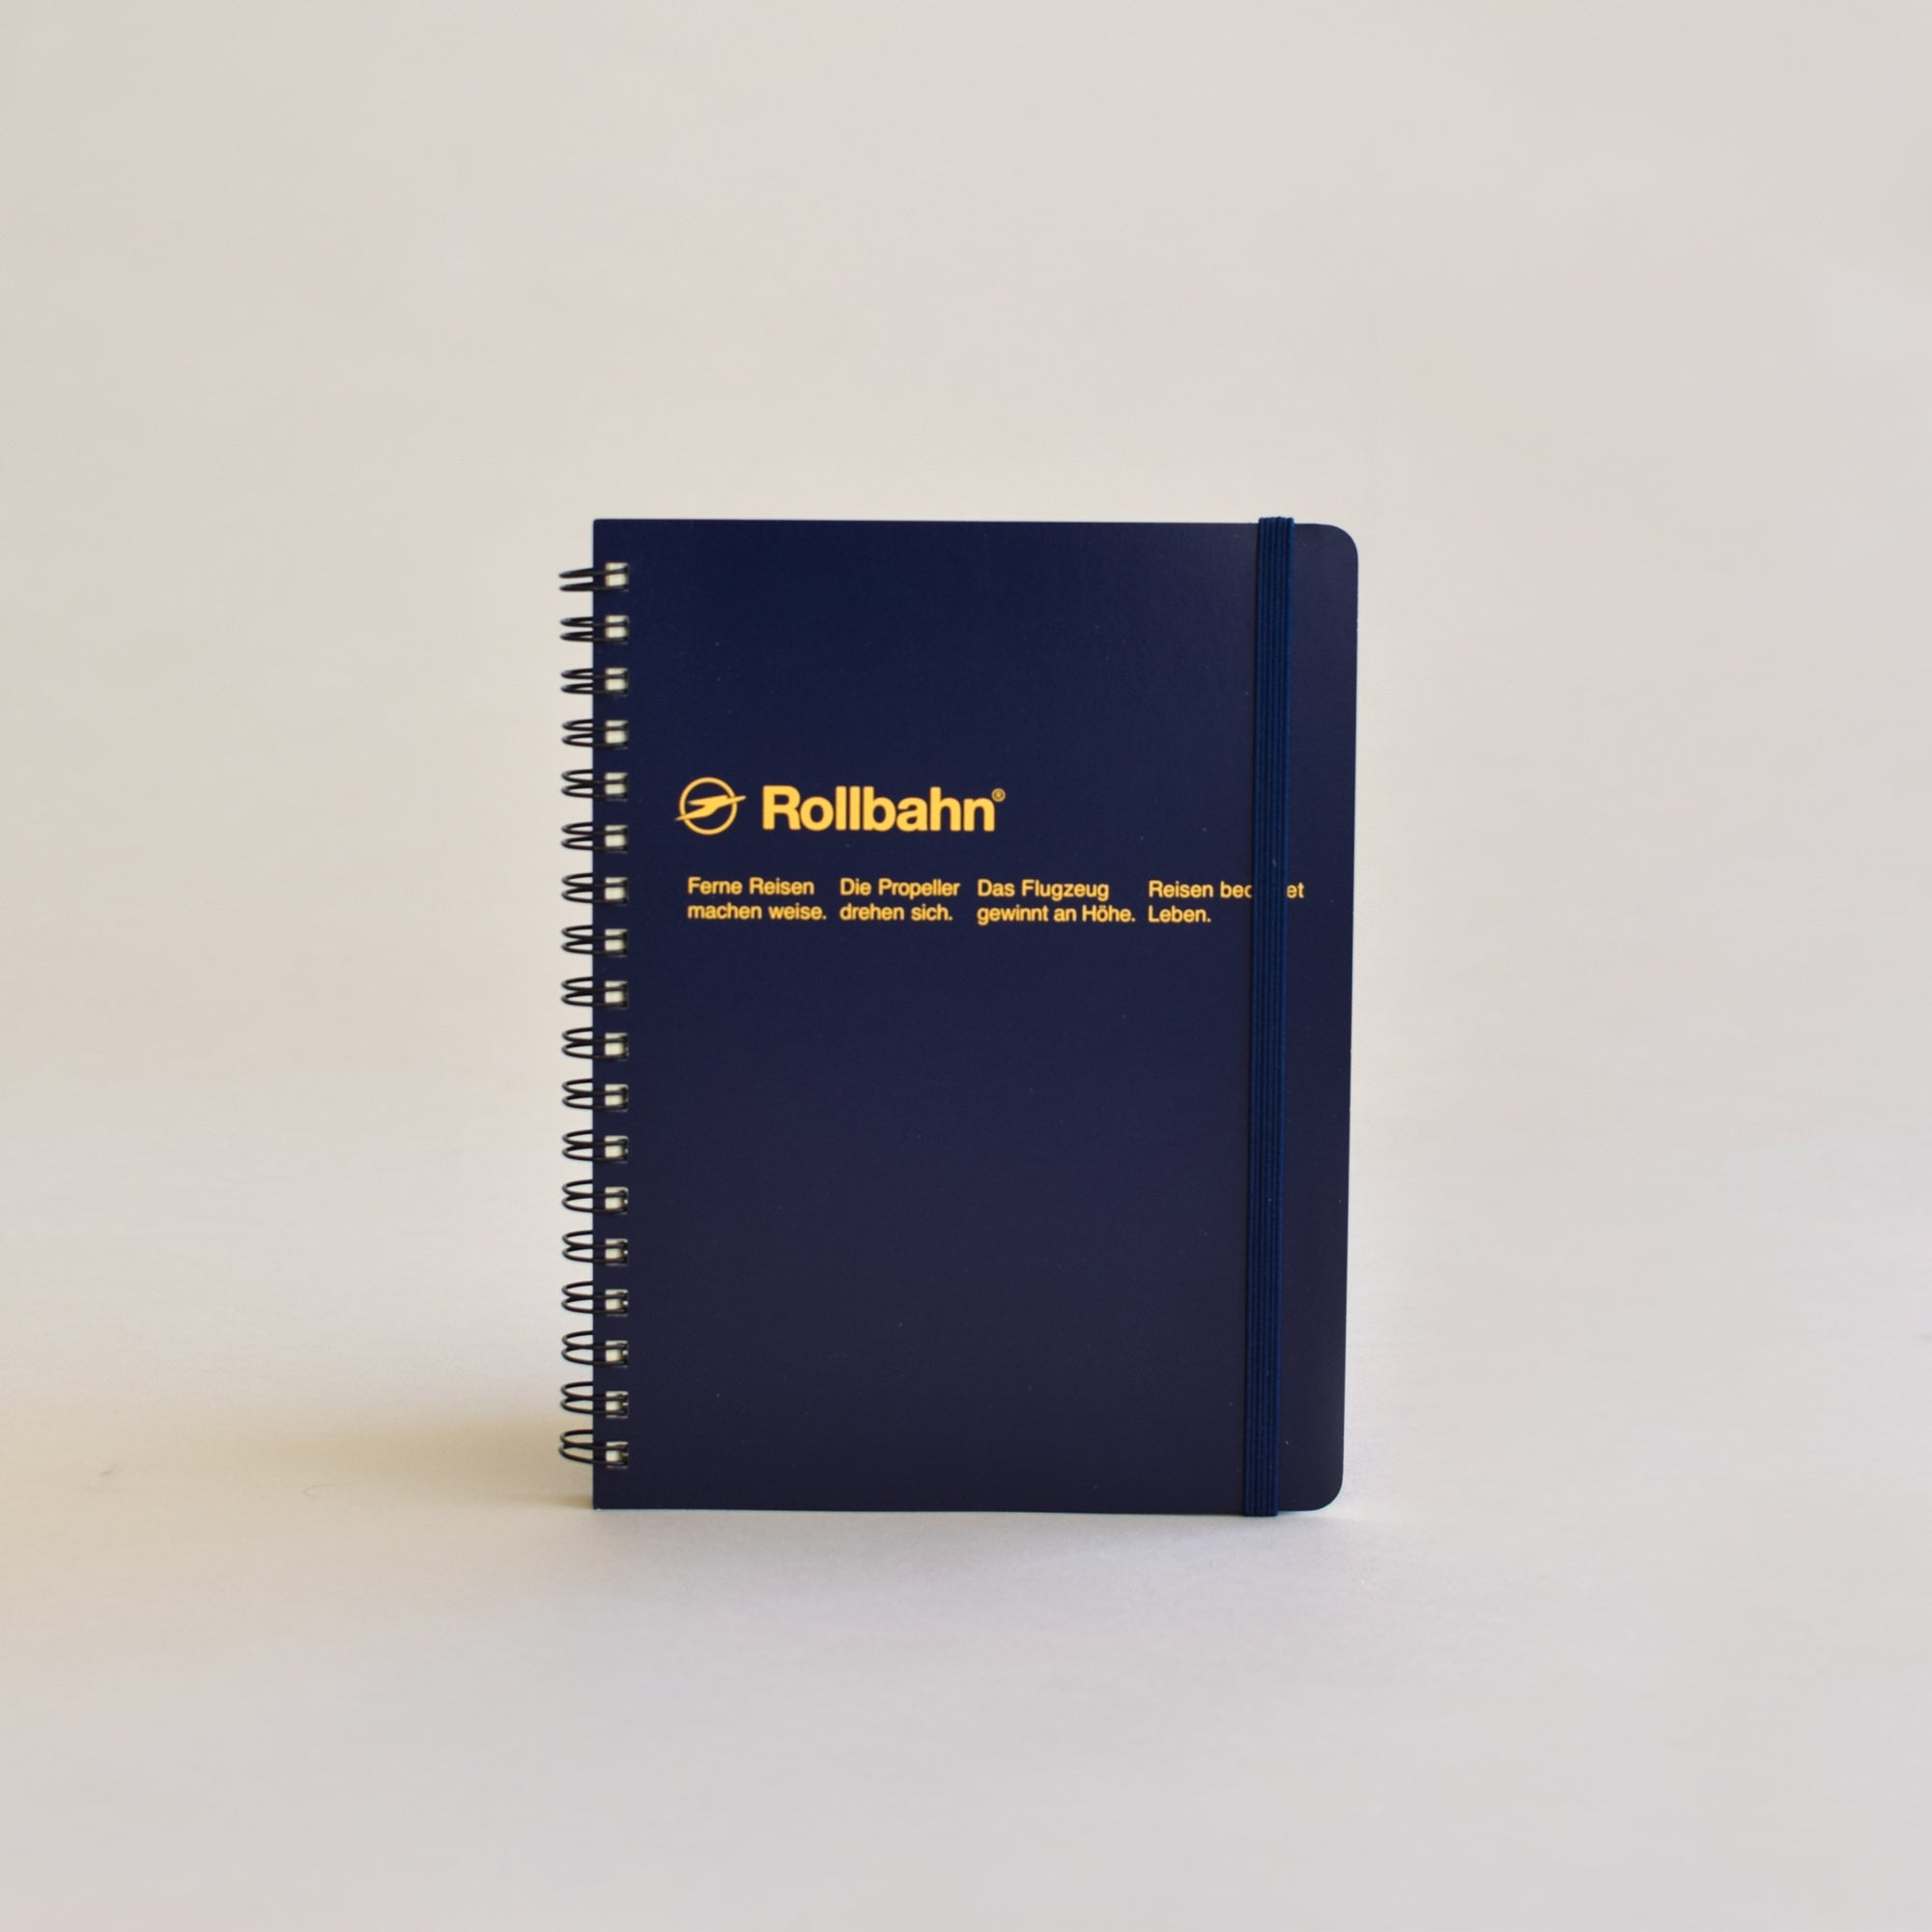 The Rollbahn Spiral Notebook Large Size from Delfonics in dark blue.